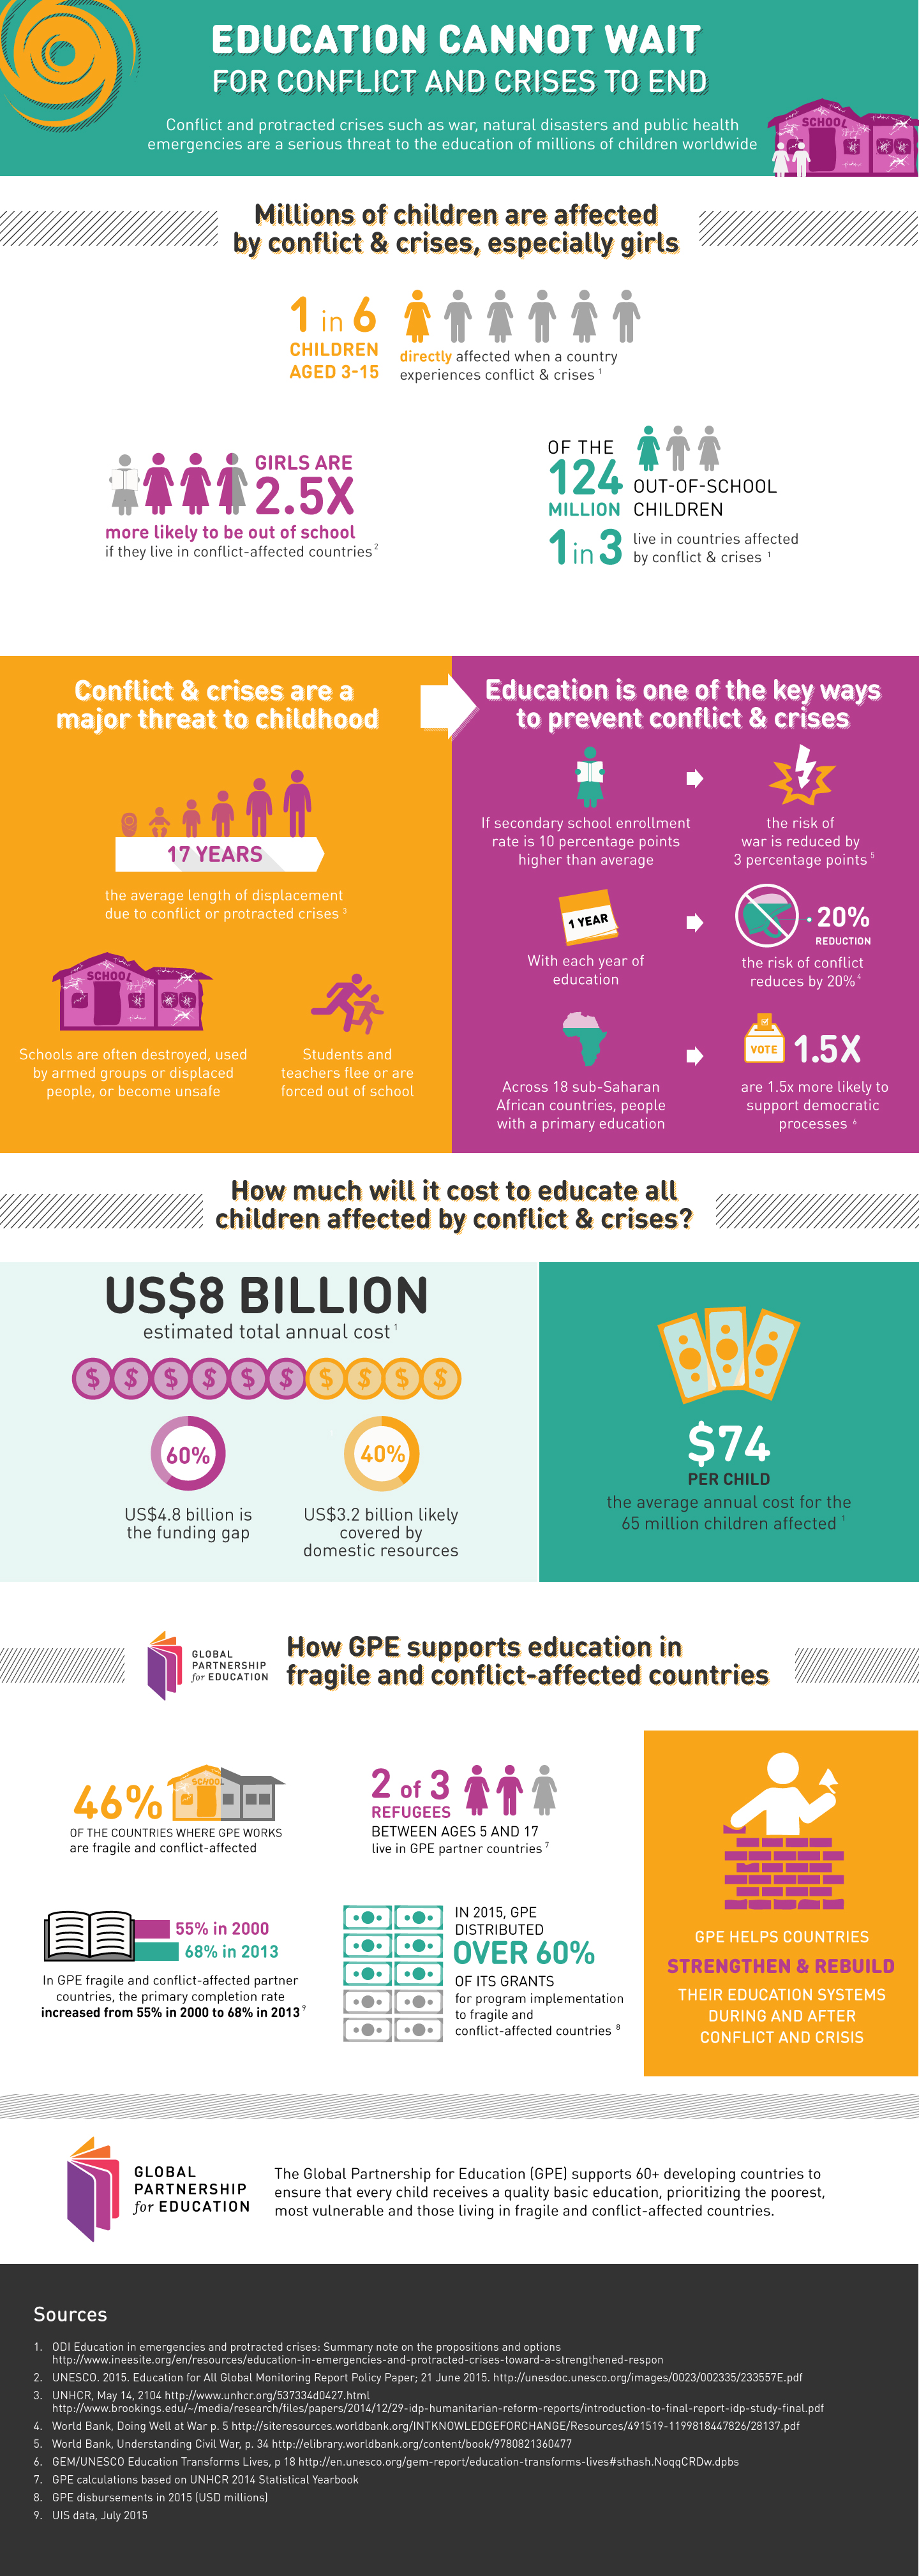 Infographic - Education cannot wait for conflict and crises to end